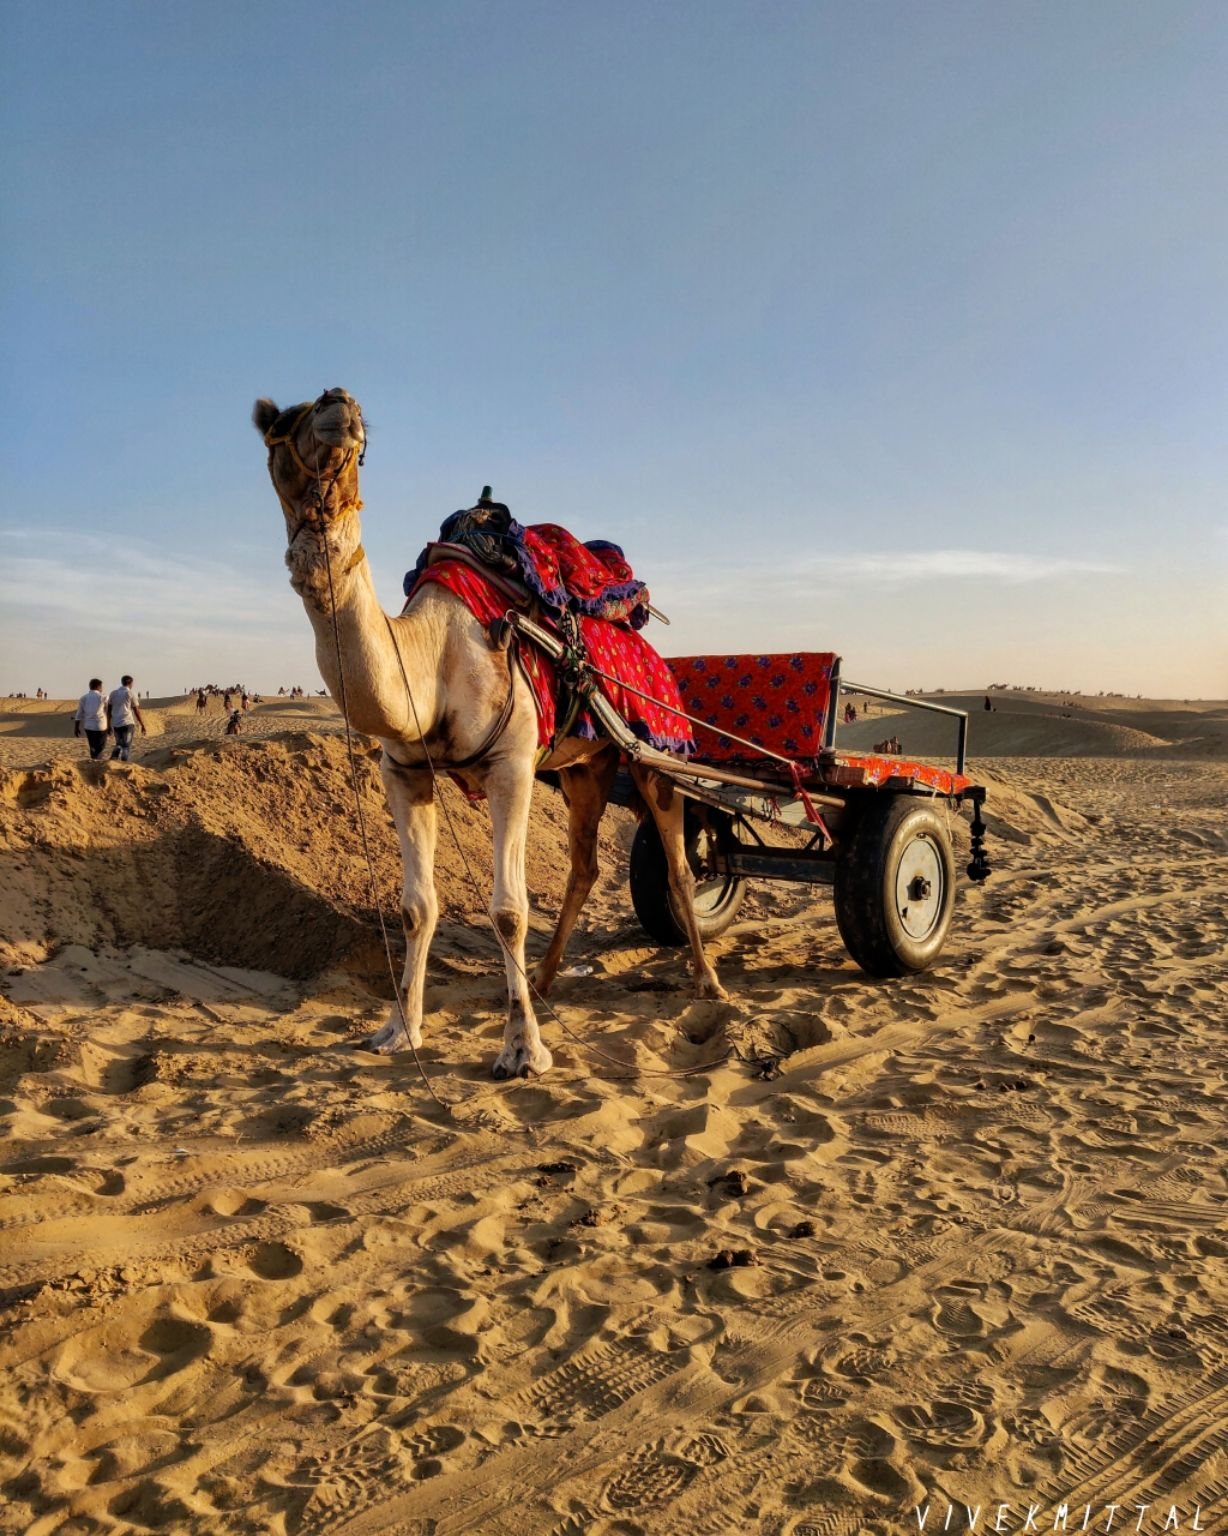 Photo of Sam Sand Dunes Desert Safari Camp Jaisalmer By Vivek mittal